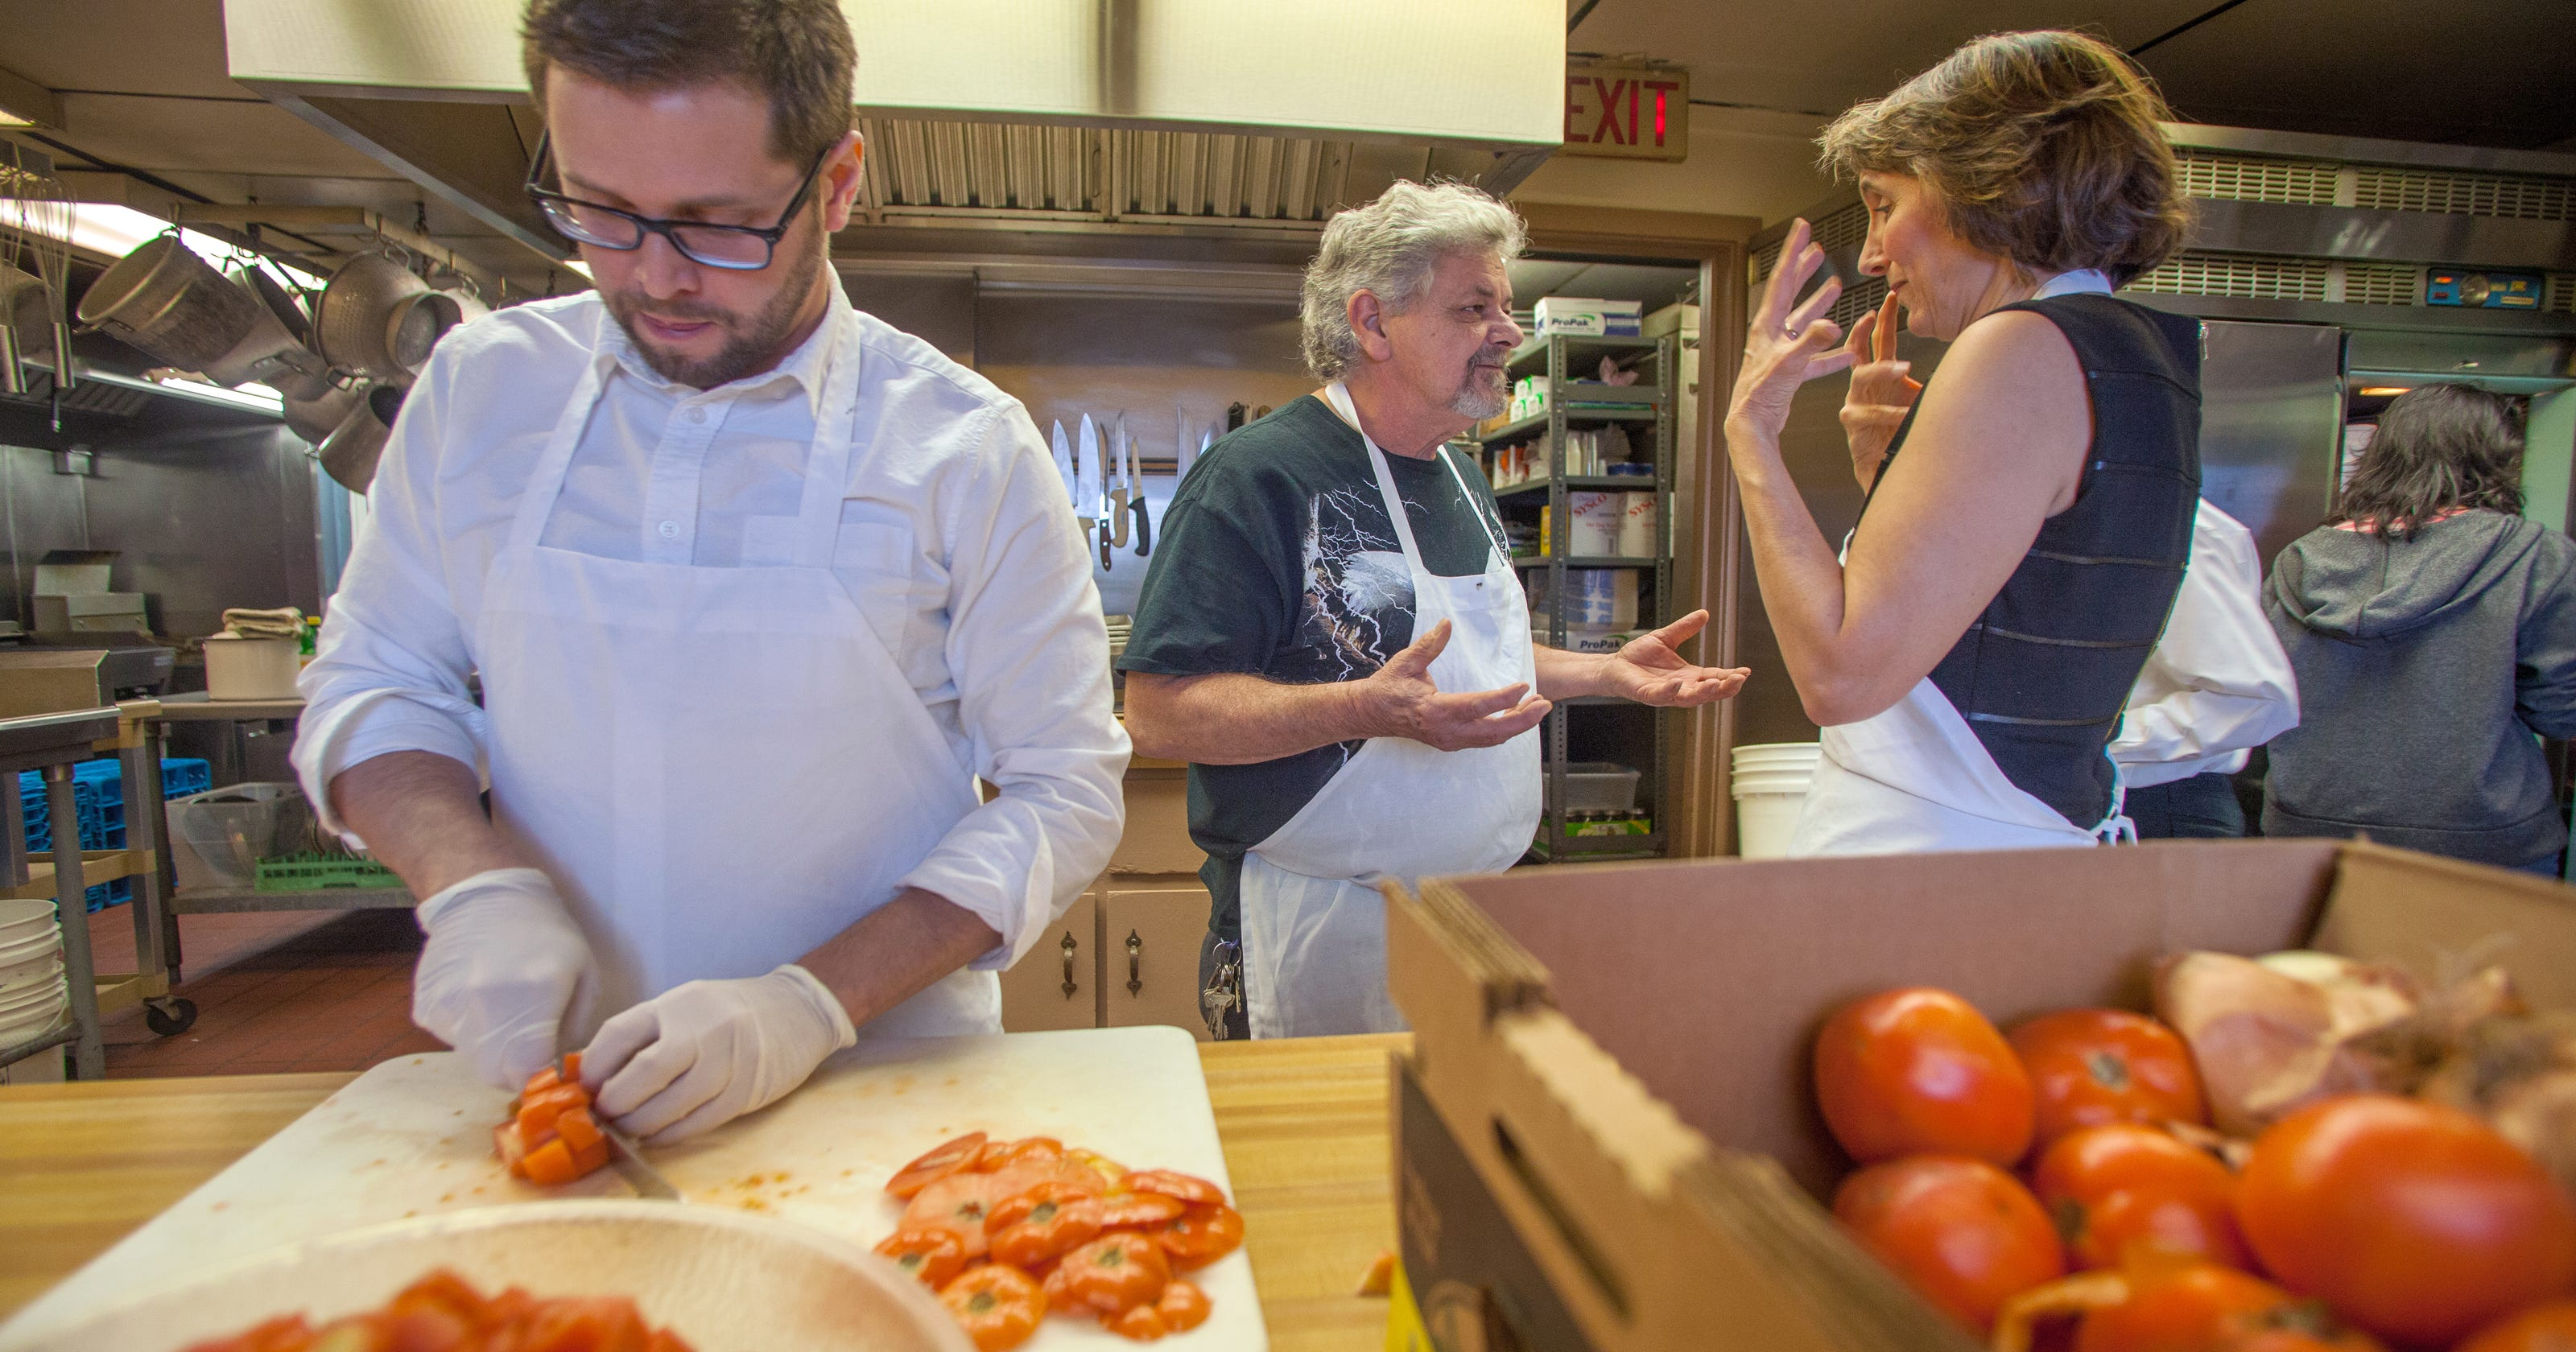 A Lebanese feast of traditions in Barre